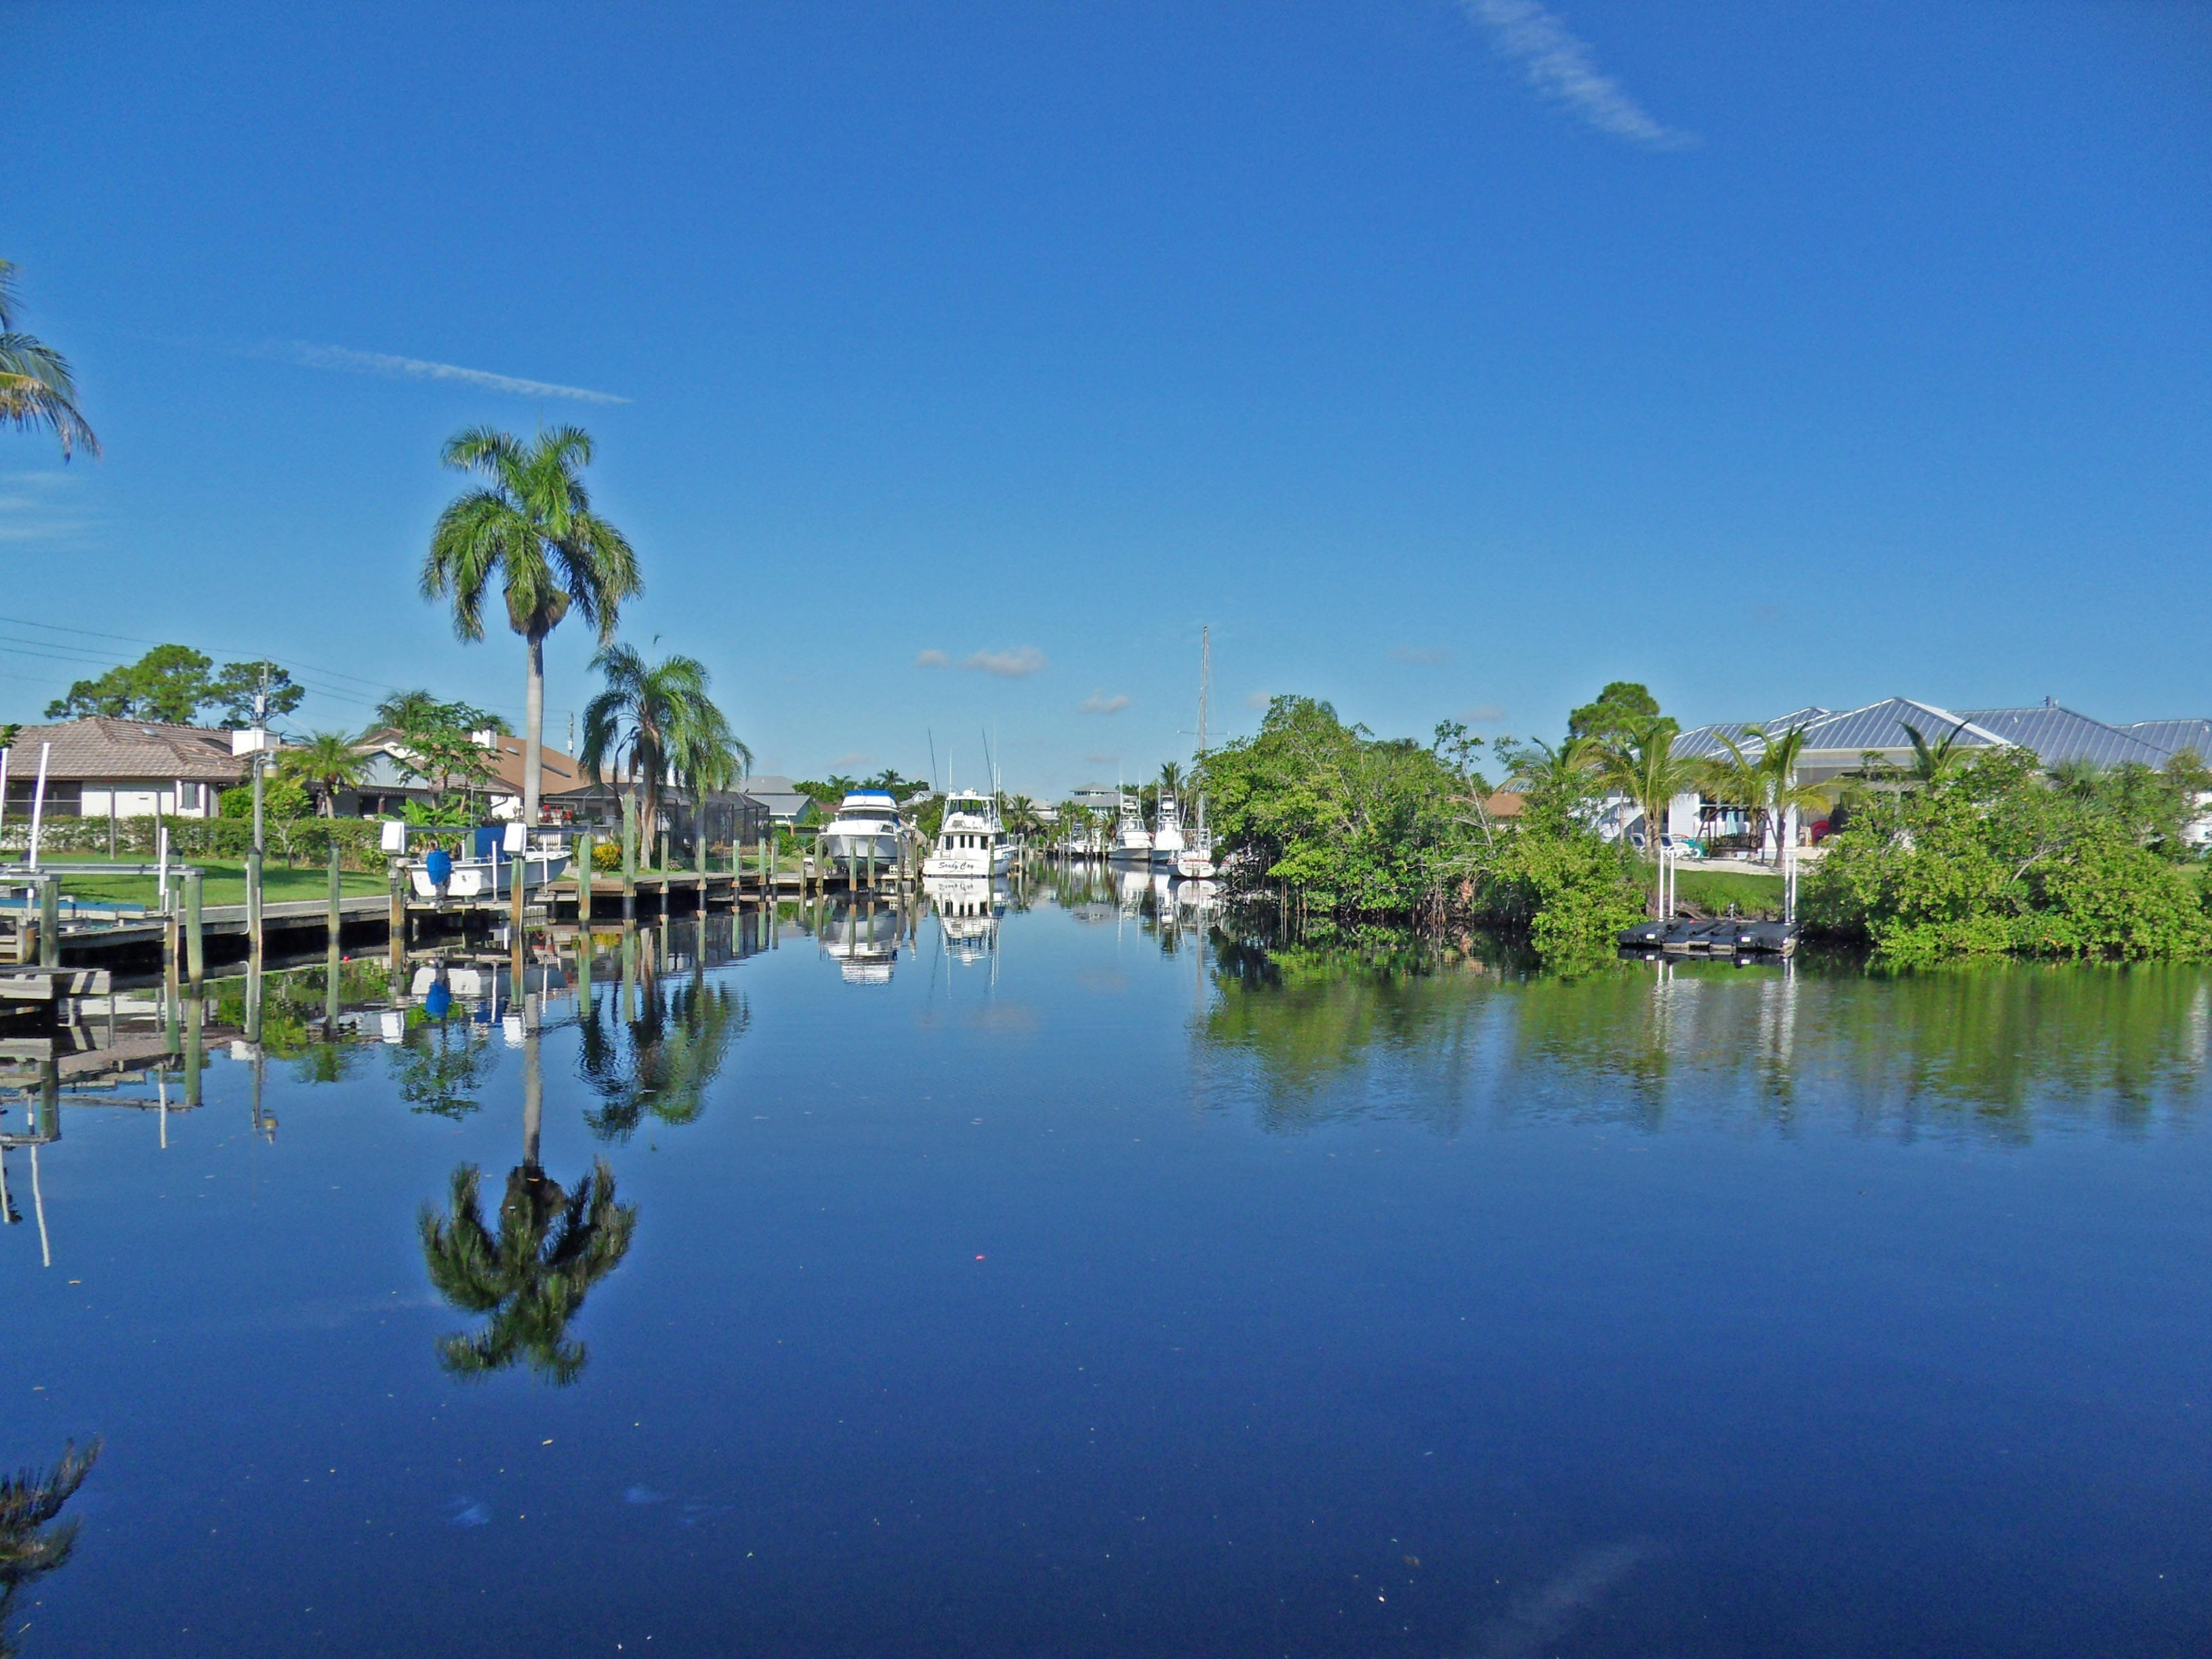 http://stuartfloridarealestatenews.com/wp-content/gallery/listings/011-water-view.jpg